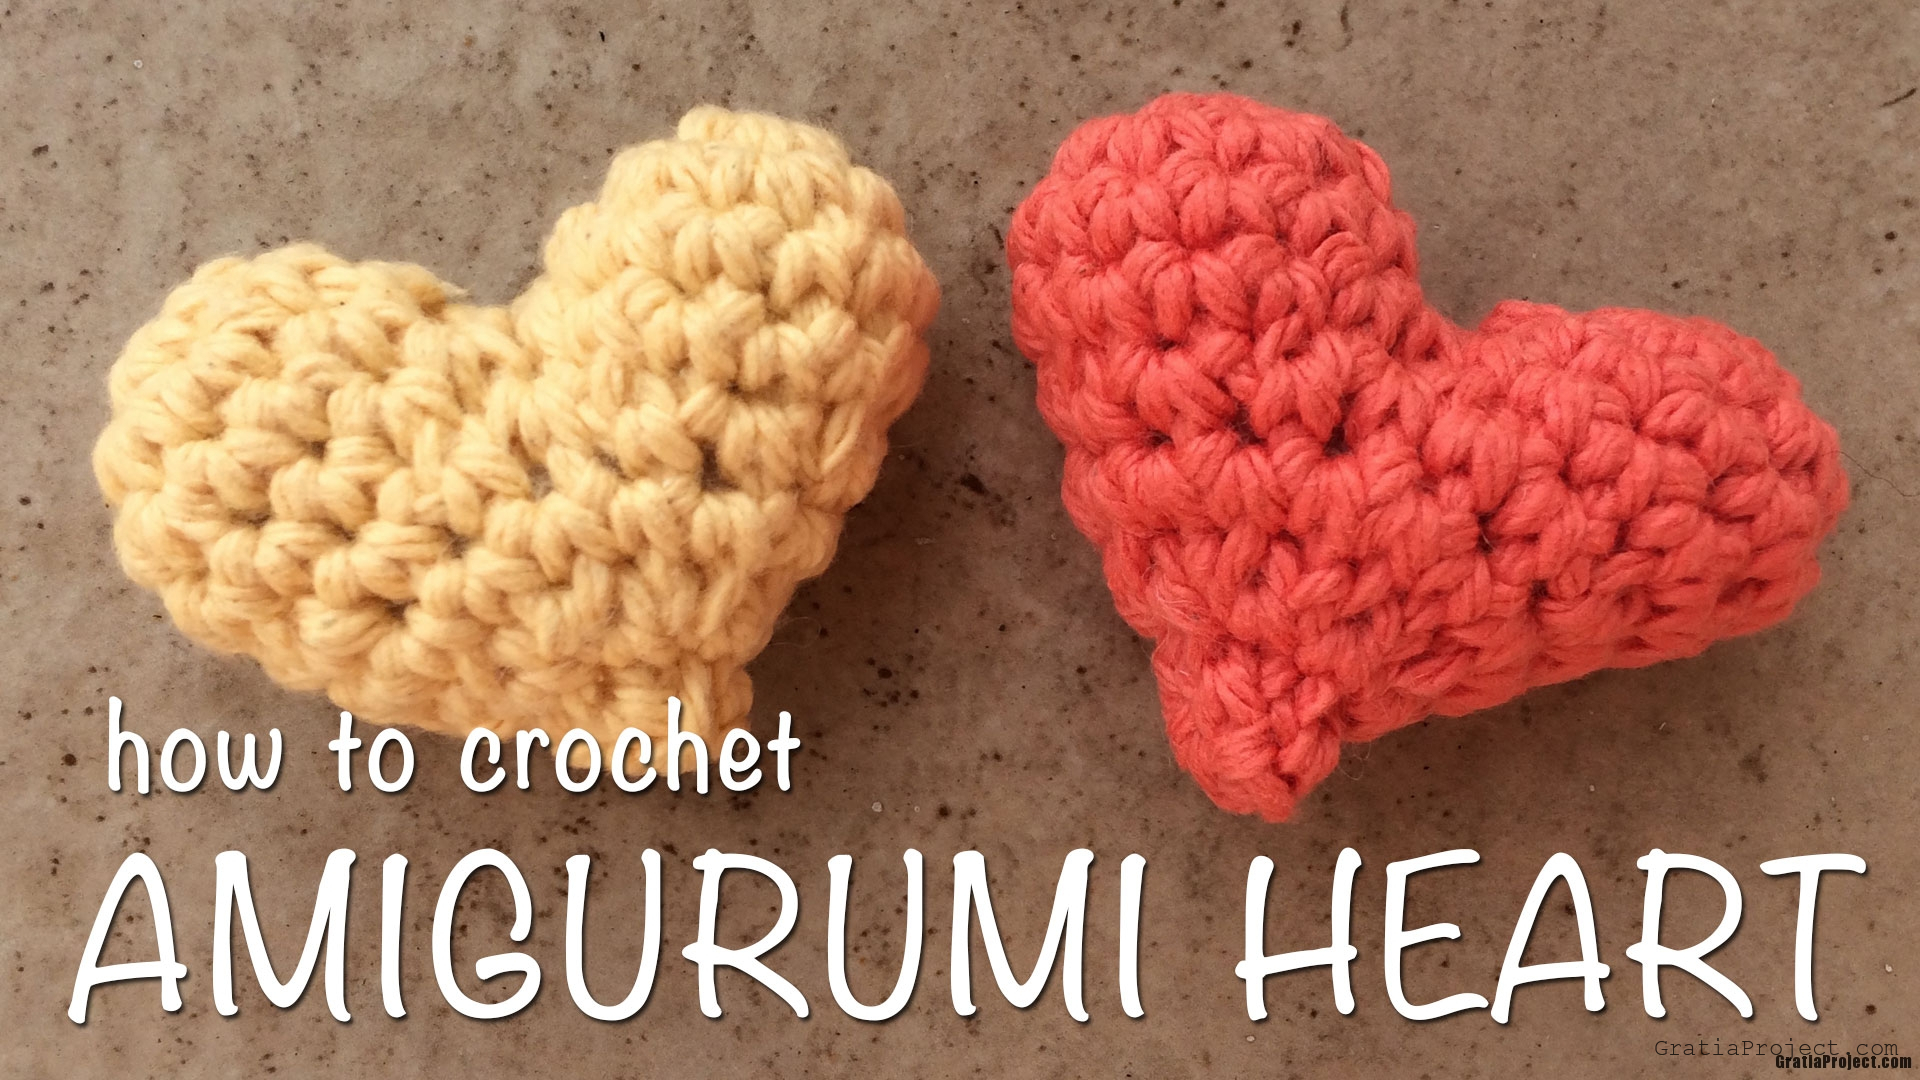 how-to-crochet-amigurumi-heart